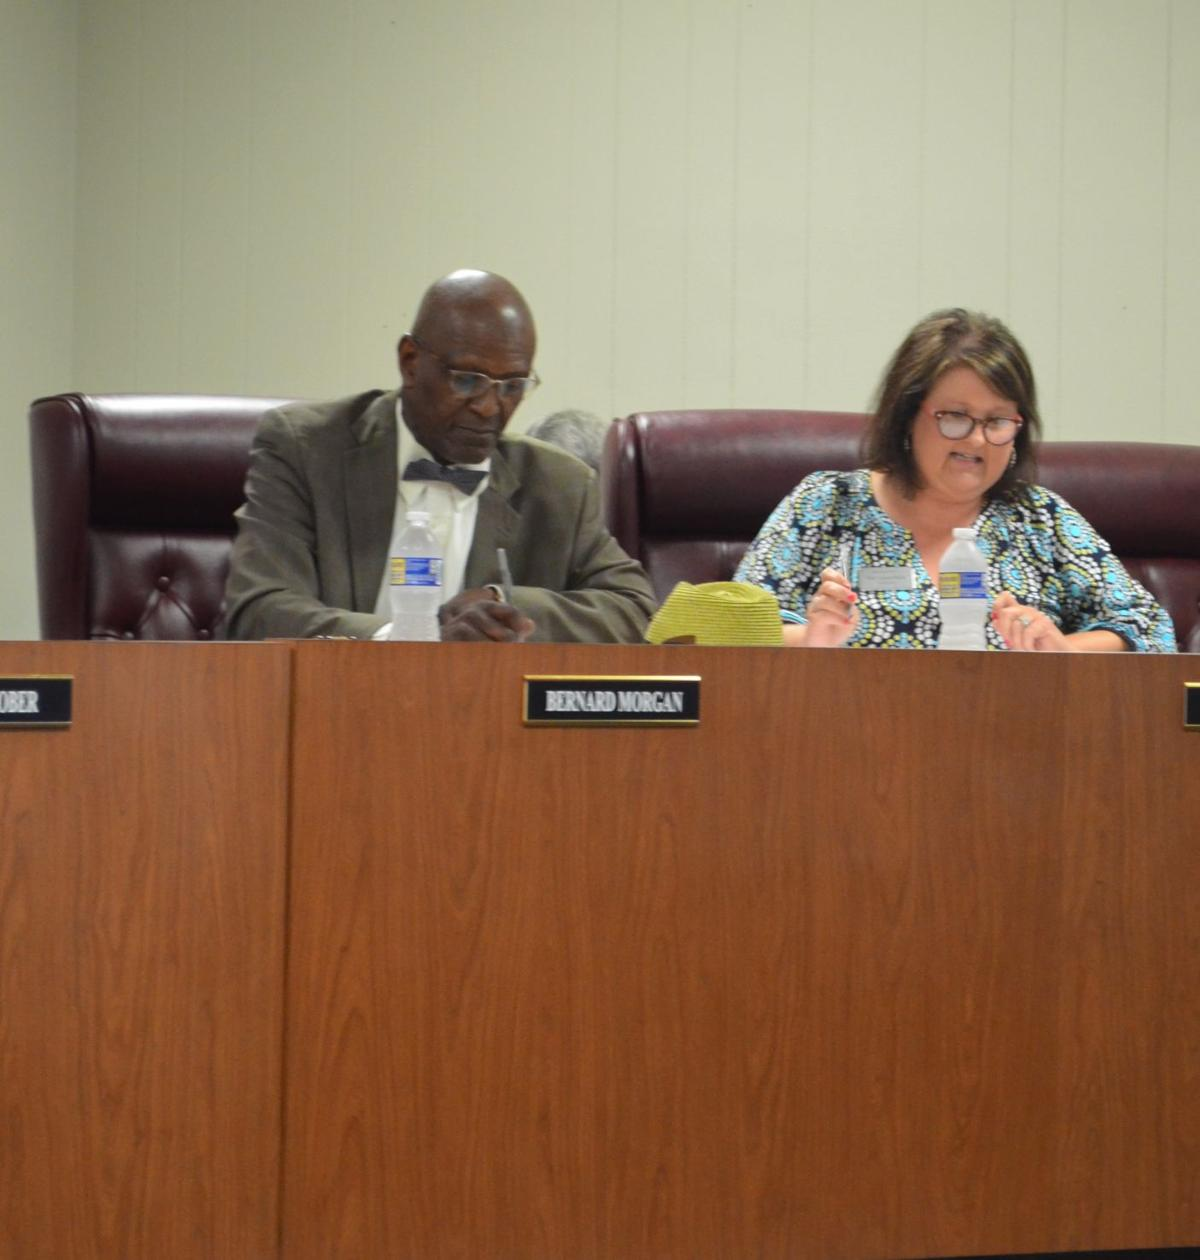 Polk County Board of Education - April 2019 meeting